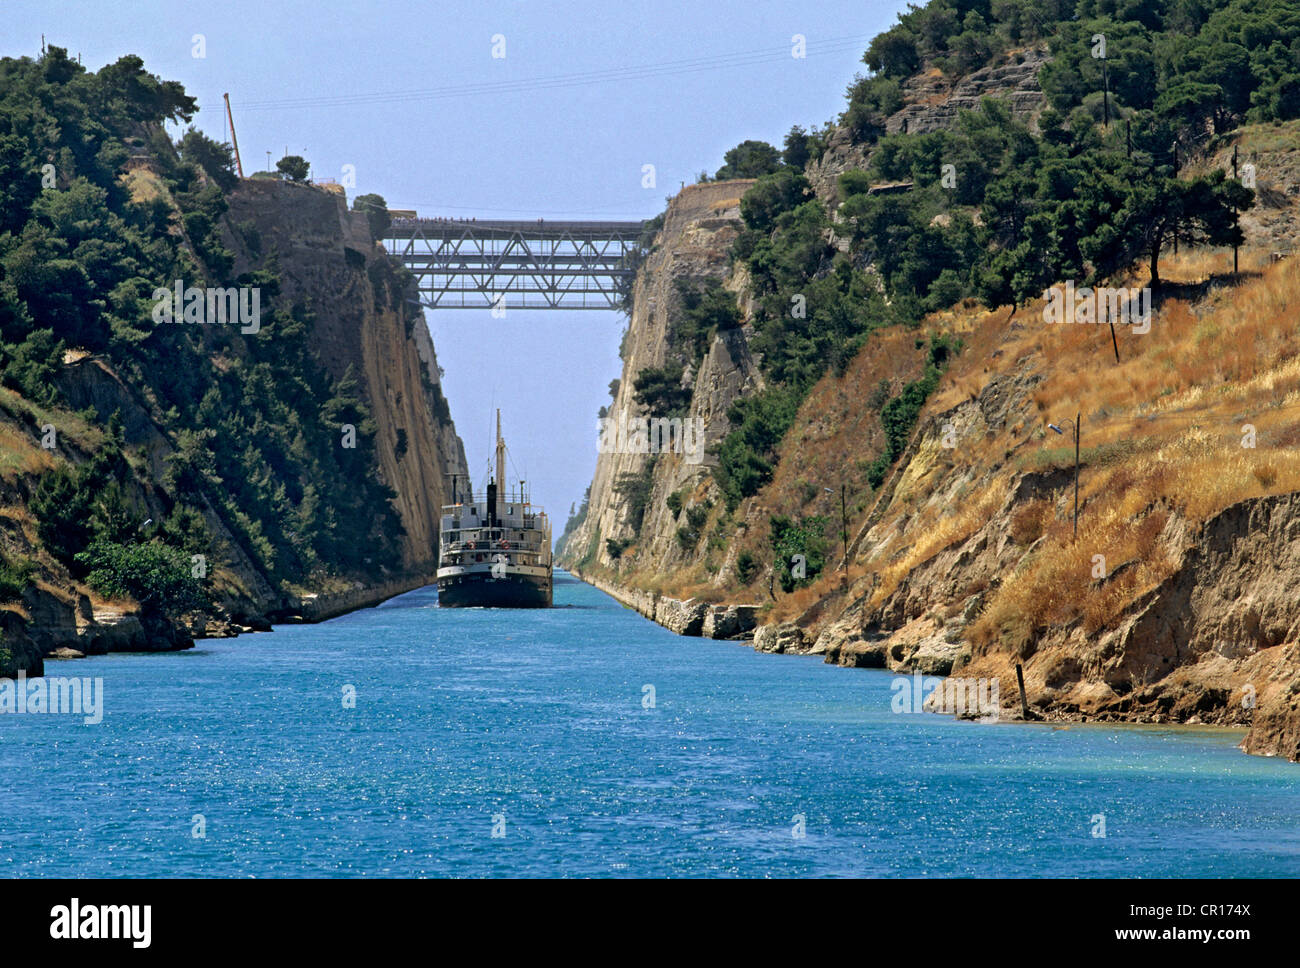 Greece Peloponnese Corinth Canal built in the 19th century to connect the Gulf of Corinth with the Ionian Sea in Stock Photo